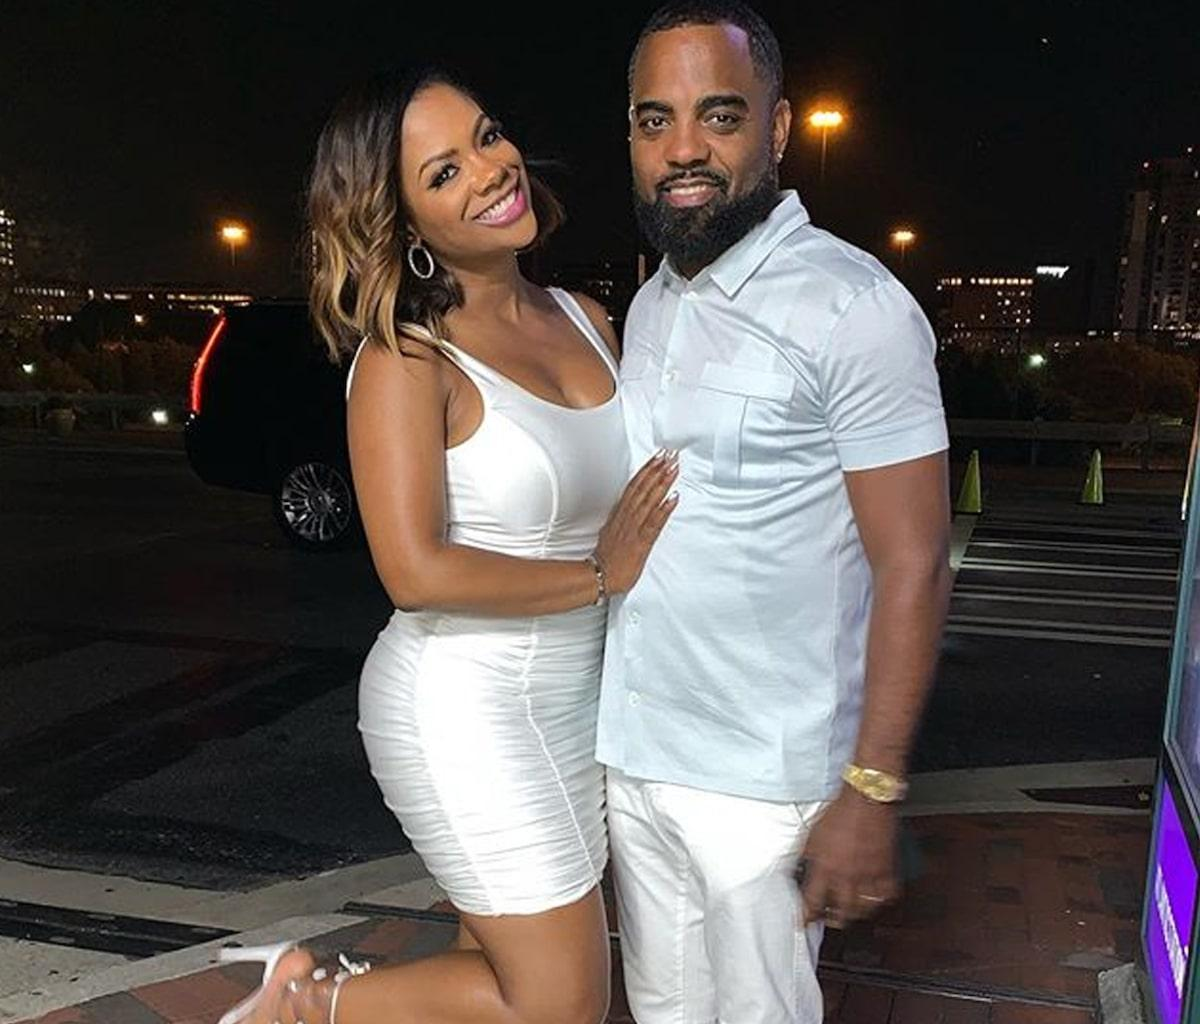 Kandi Burruss Looks Amazing In This Skin-Tight Outfit